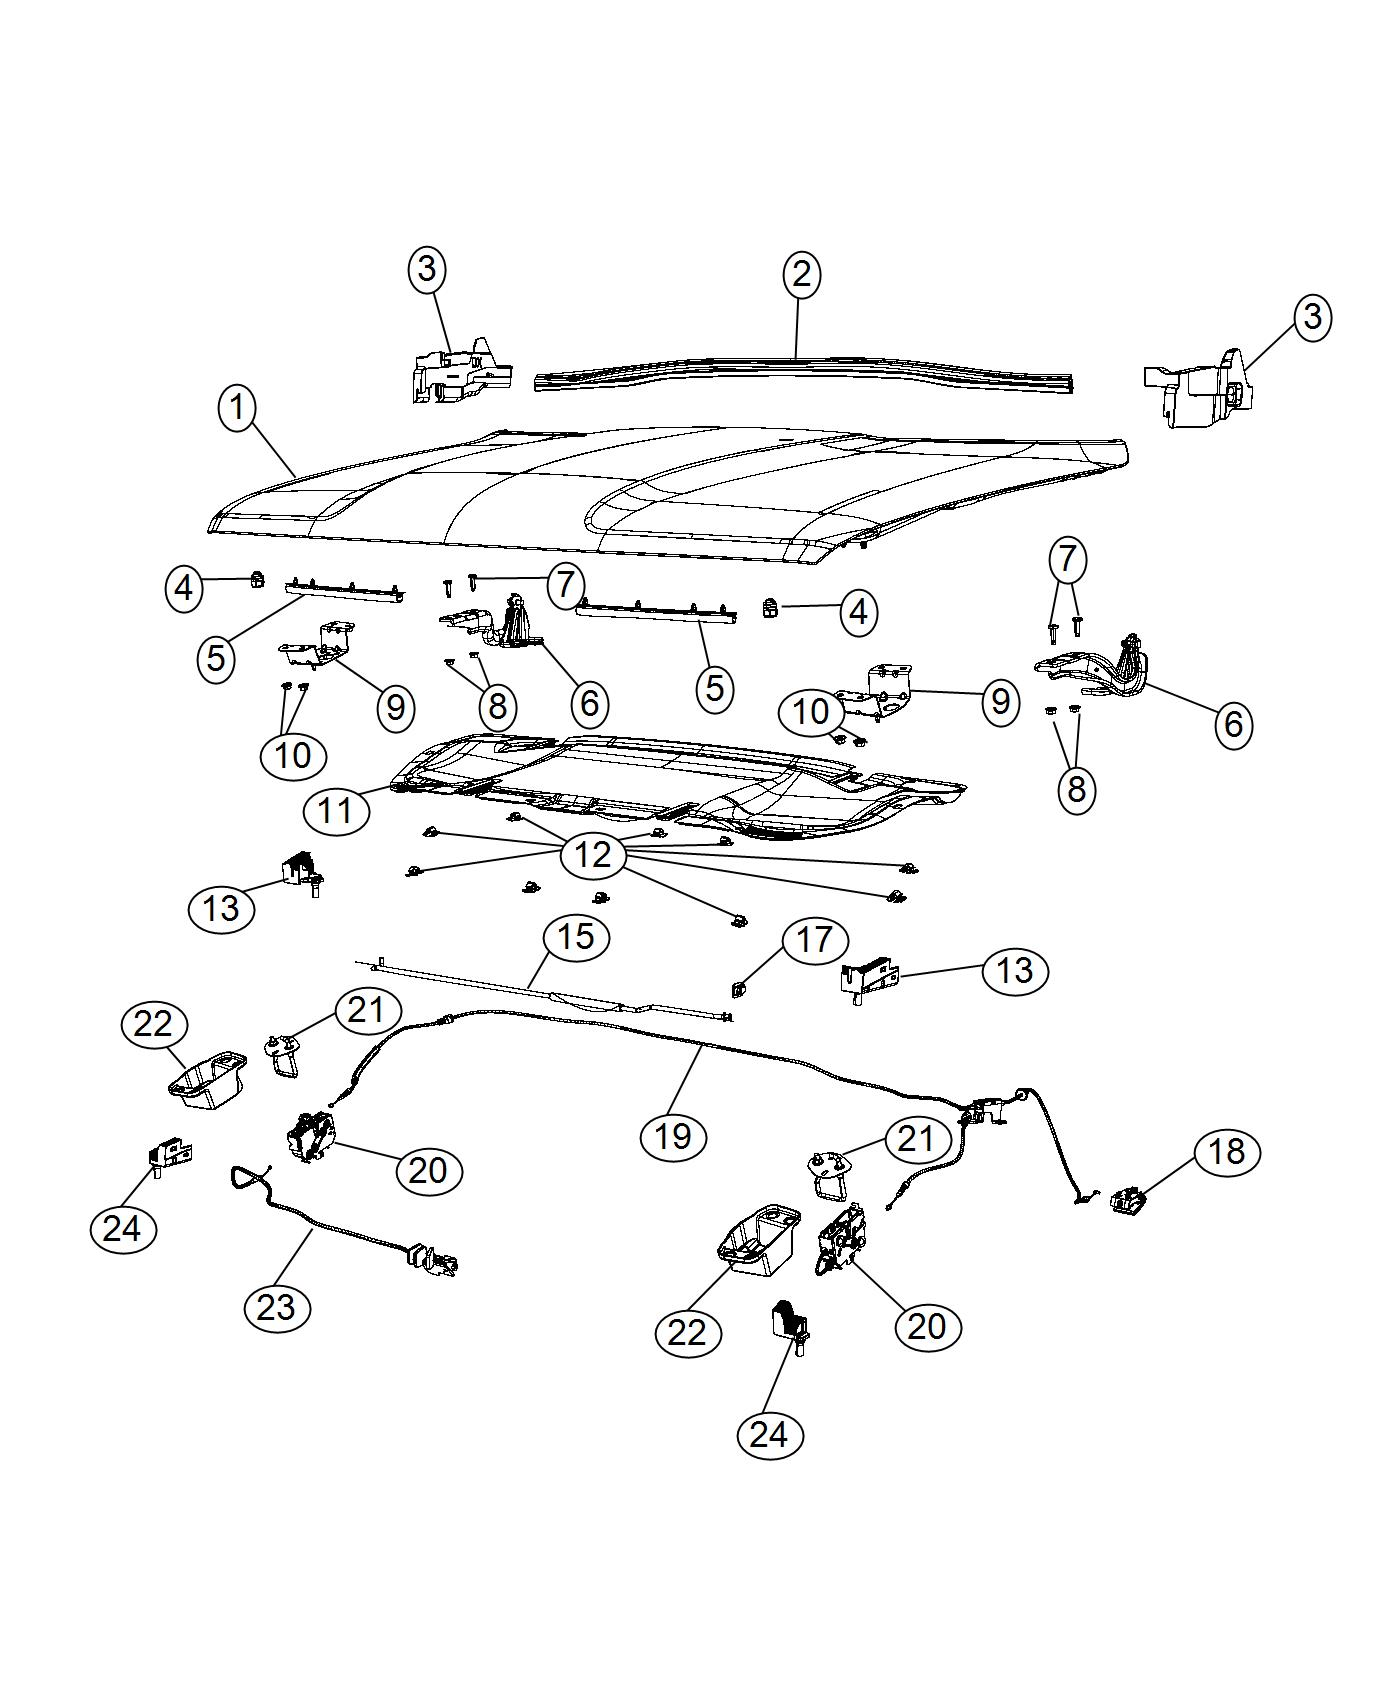 i2325131 Radiator Fan Wiring Diagram For Jeep Renegade on